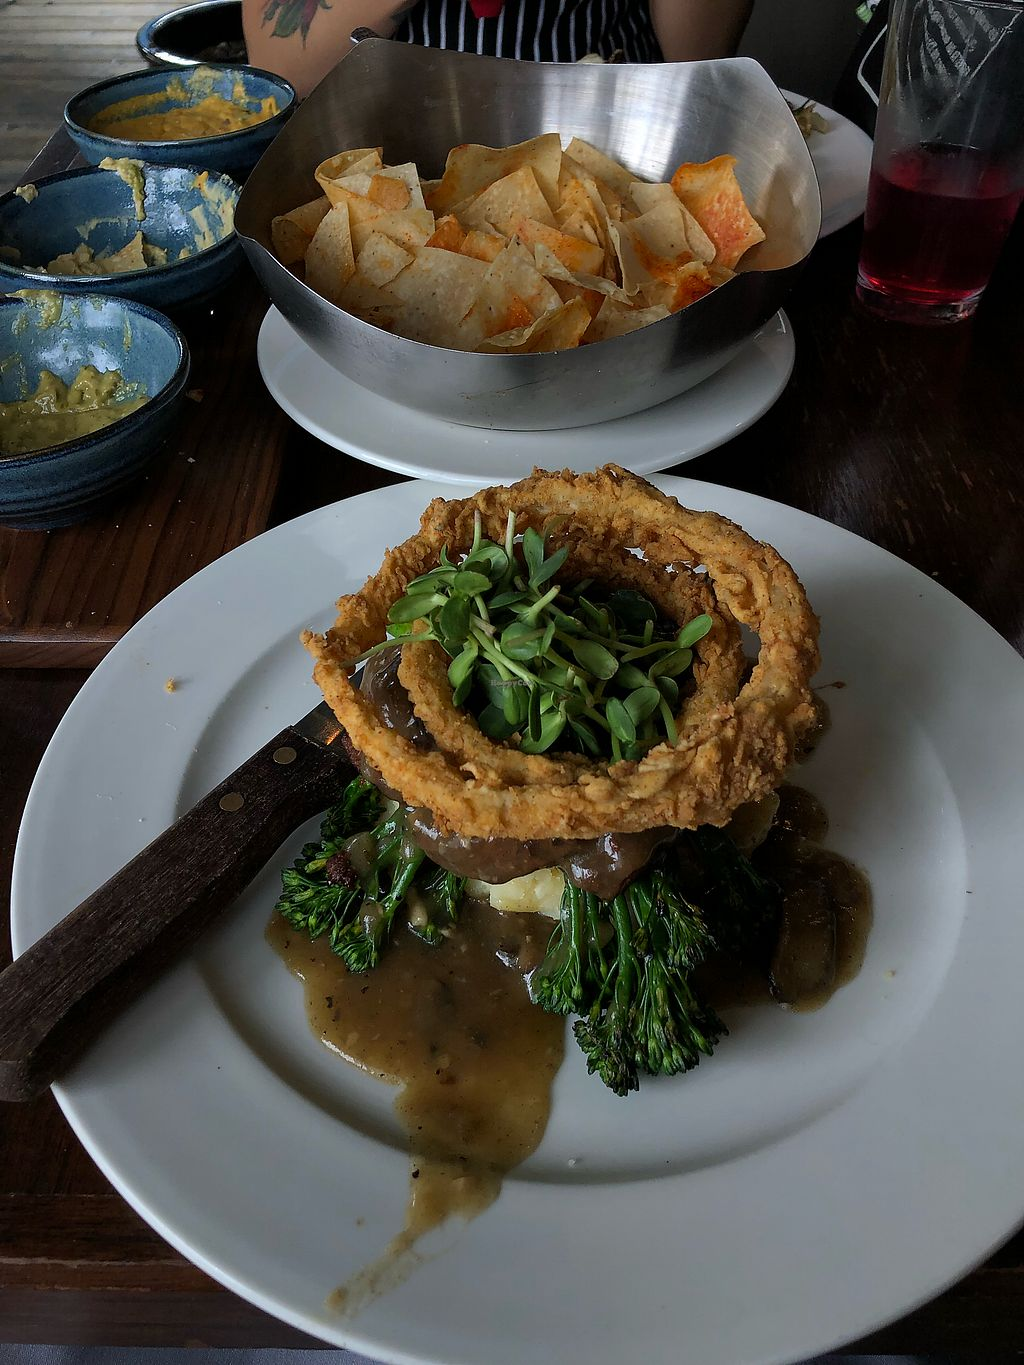 """Photo of V-Eats  by <a href=""""/members/profile/IannLopez"""">IannLopez</a> <br/>Salisbury Steak <br/> February 25, 2018  - <a href='/contact/abuse/image/82061/363802'>Report</a>"""